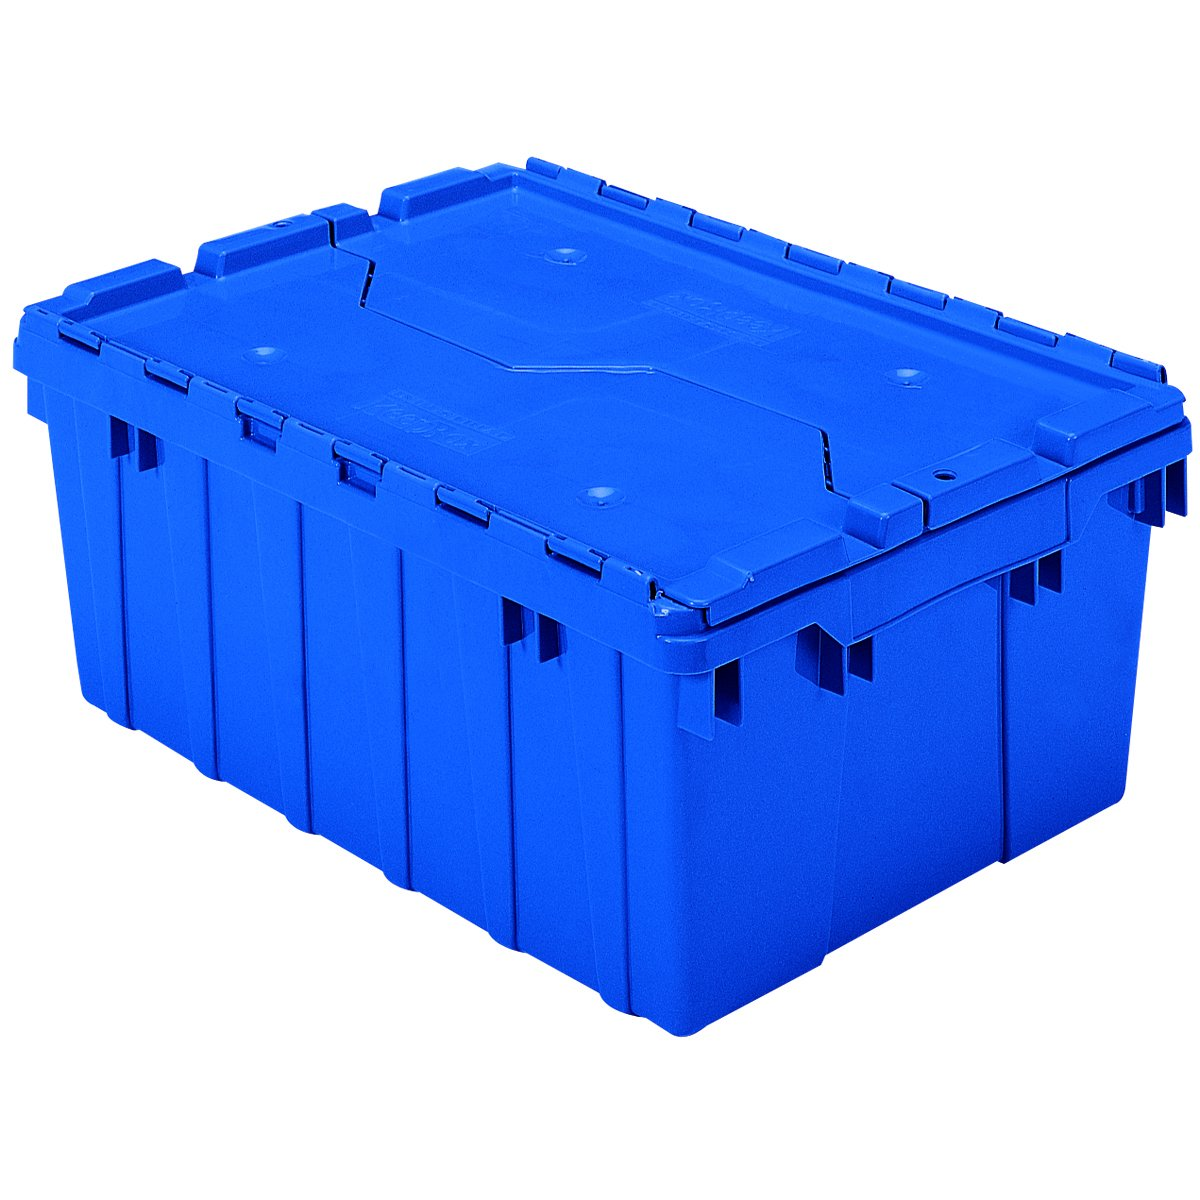 Akro-Mils 39085 Plastic Storage and Distribution Container Tote with Hinged Lid, 21.5-Inch L by 15-Inch W by 9-Inch H, Blue, Pack of 6